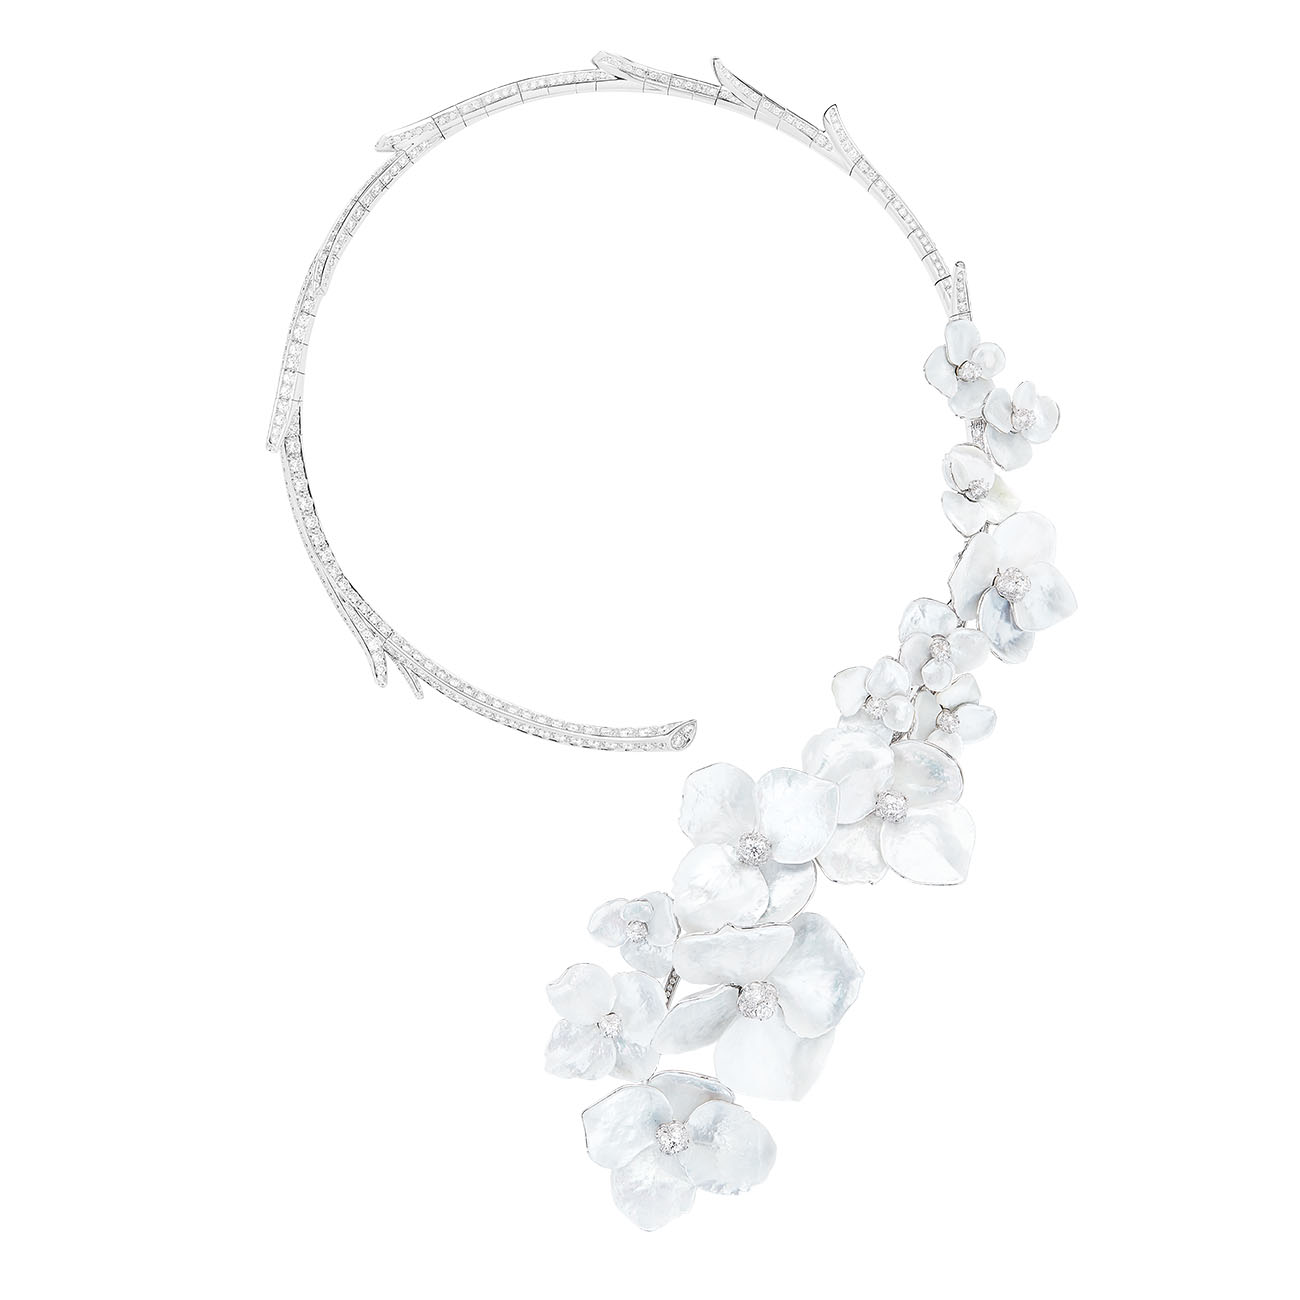 Boucheron - Nuage de Fleurs Question Mark necklace set with mother-of-pearl and diamonds